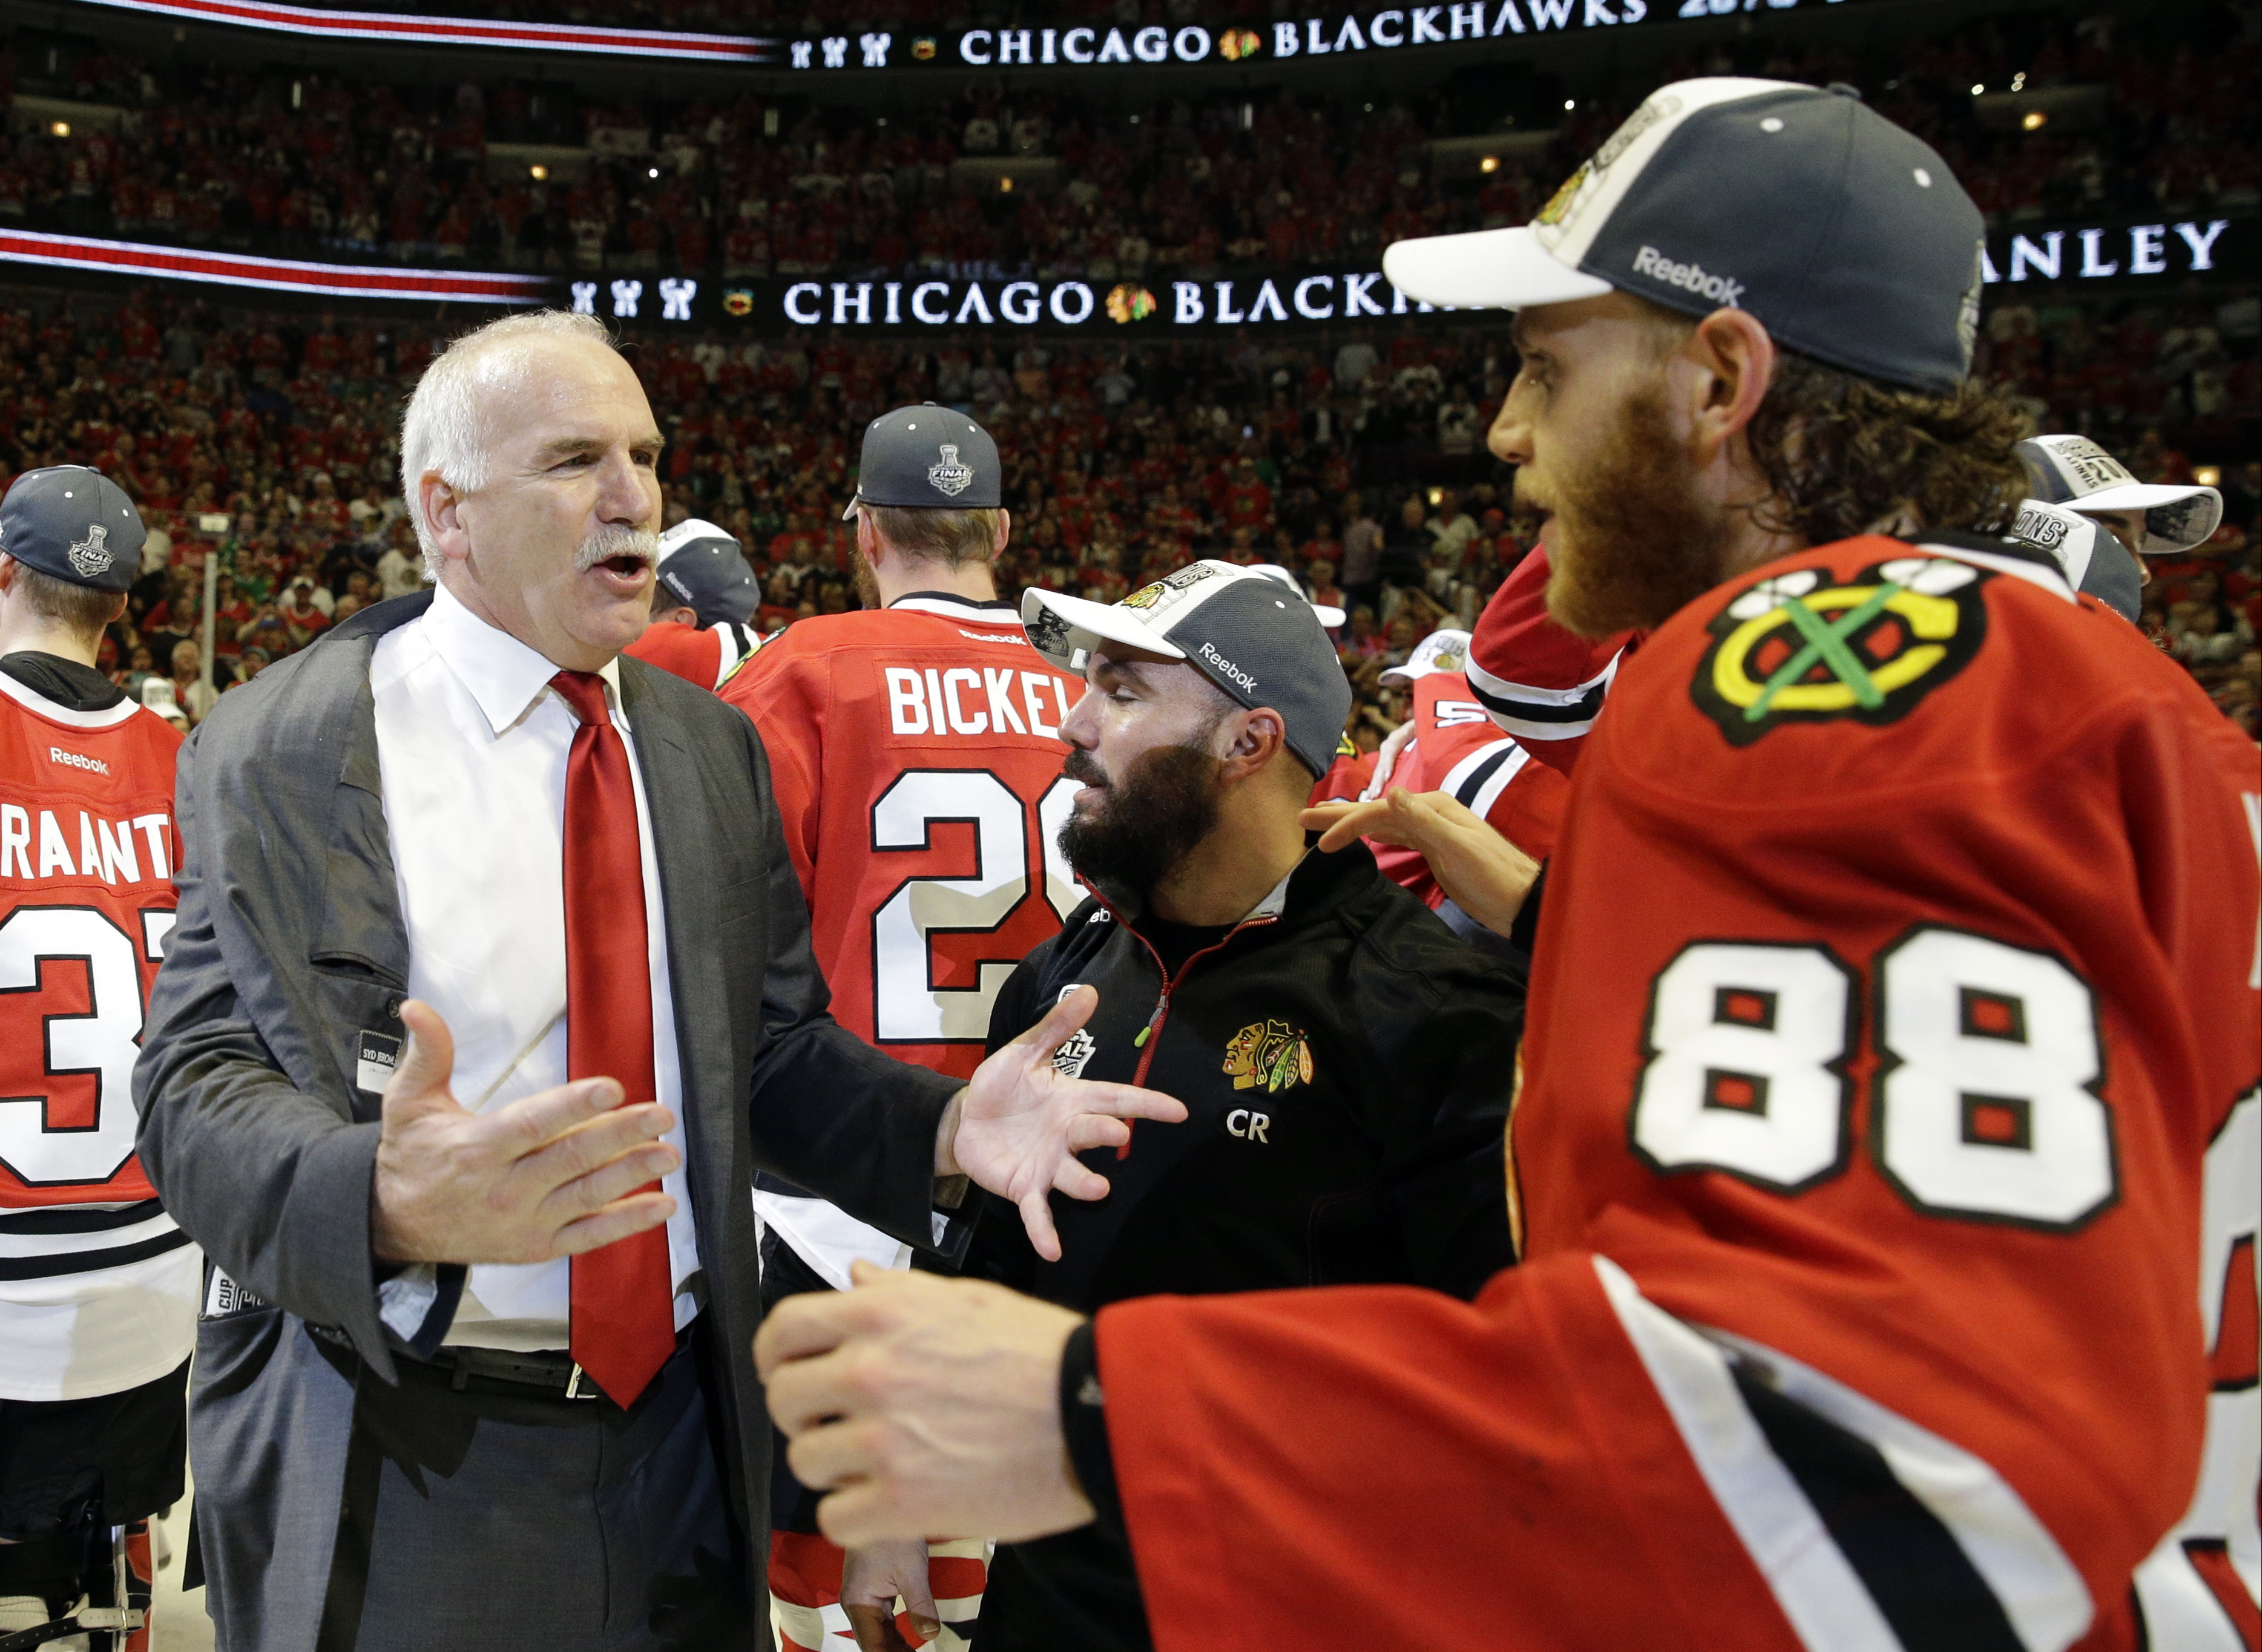 Chicago Blackhawks head coach Joel Quenneville celebrates with Patrick Kane (88) after defeating the Tampa Bay Lightning in Game 6 of the NHL hockey Stanley Cup Final series on Monday, June 15, 2015, in Chicago. The Blackhawks defeated the Lightning 2-0 t